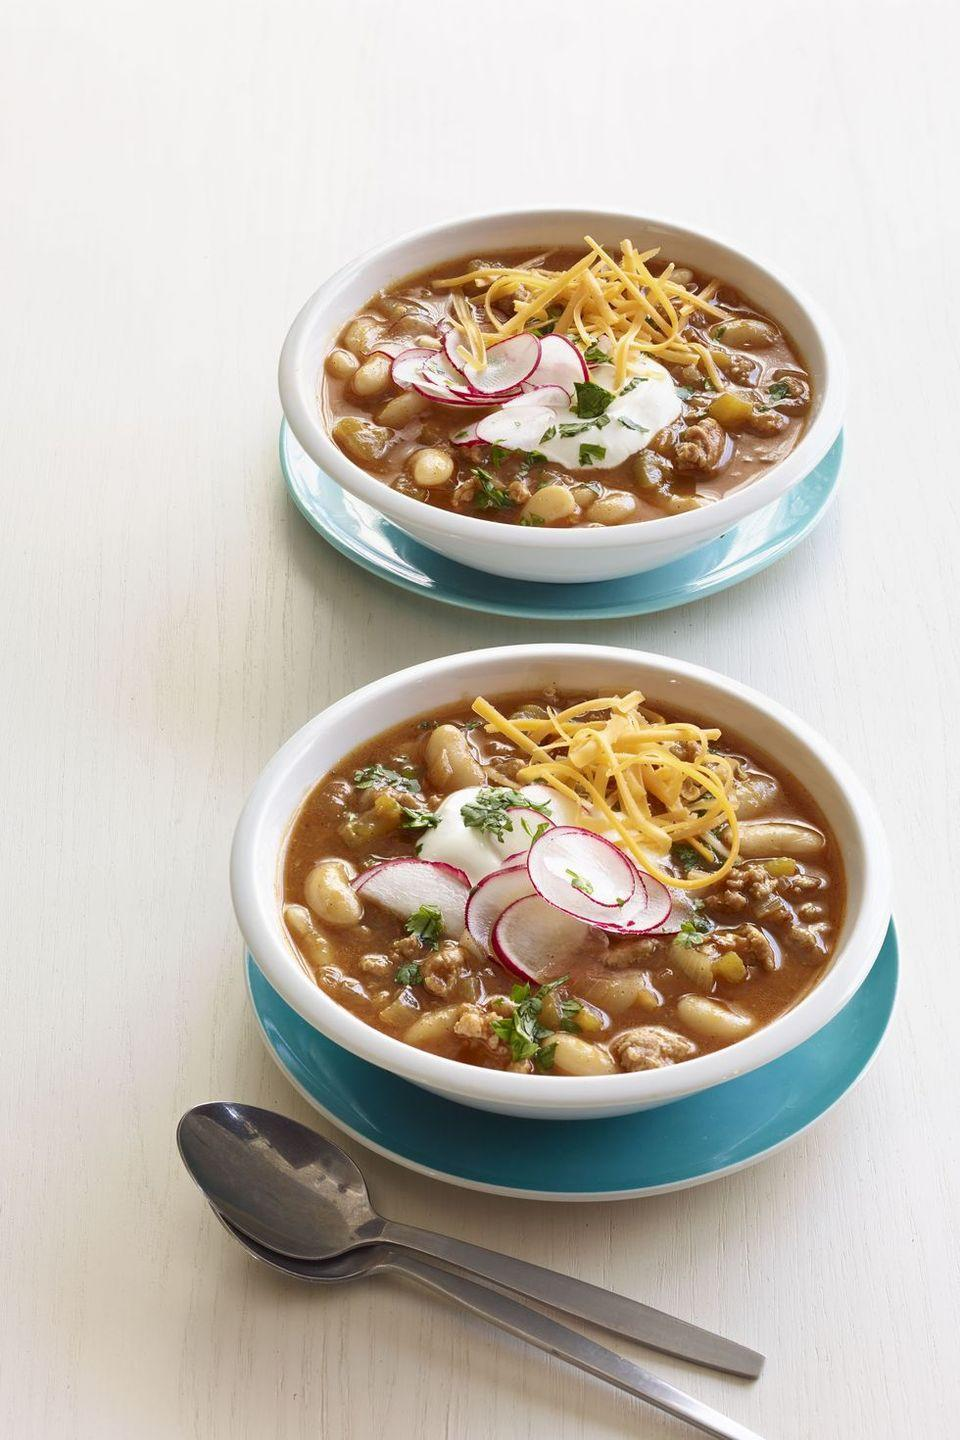 "<p>If you're not having pumpkin with your chili, you're missing out. This savory fall flavor combo happens to taste amazing year-round.</p><p><em><a href=""https://www.goodhousekeeping.com/food-recipes/a14898/slow-cooker-turkey-pumpkin-chili-recipe-wdy0115/"" rel=""nofollow noopener"" target=""_blank"" data-ylk=""slk:Get the recipe for Slow Cooker Turkey Pumpkin Chili »"" class=""link rapid-noclick-resp"">Get the recipe for Slow Cooker Turkey Pumpkin Chili »</a></em></p>"